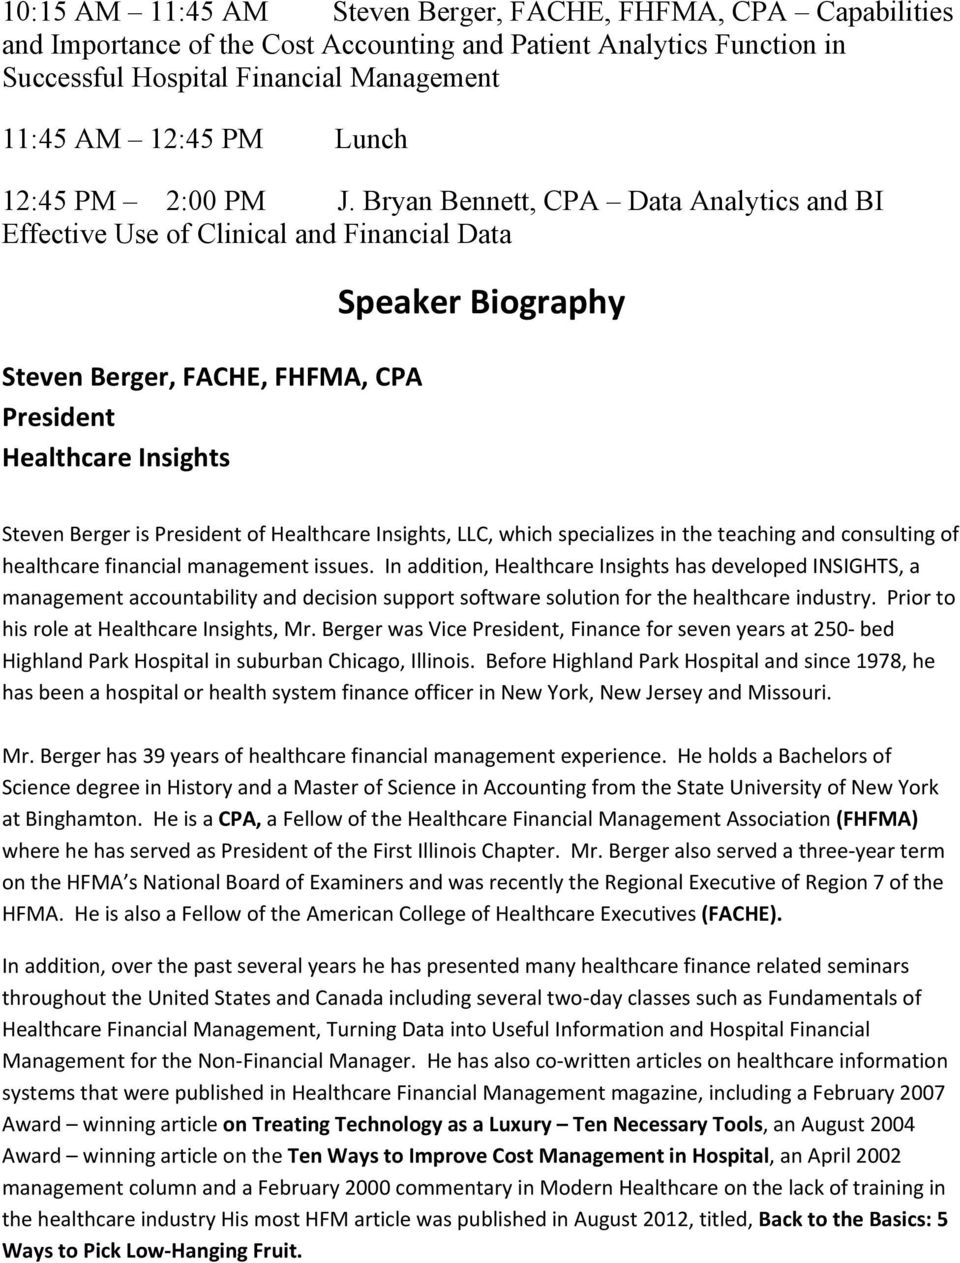 Bryan Bennett, CPA Data Analytics and BI Effective Use of Clinical and Financial Data Steven Berger, FACHE, FHFMA, CPA President Healthcare Insights Speaker Biography Steven Berger is President of